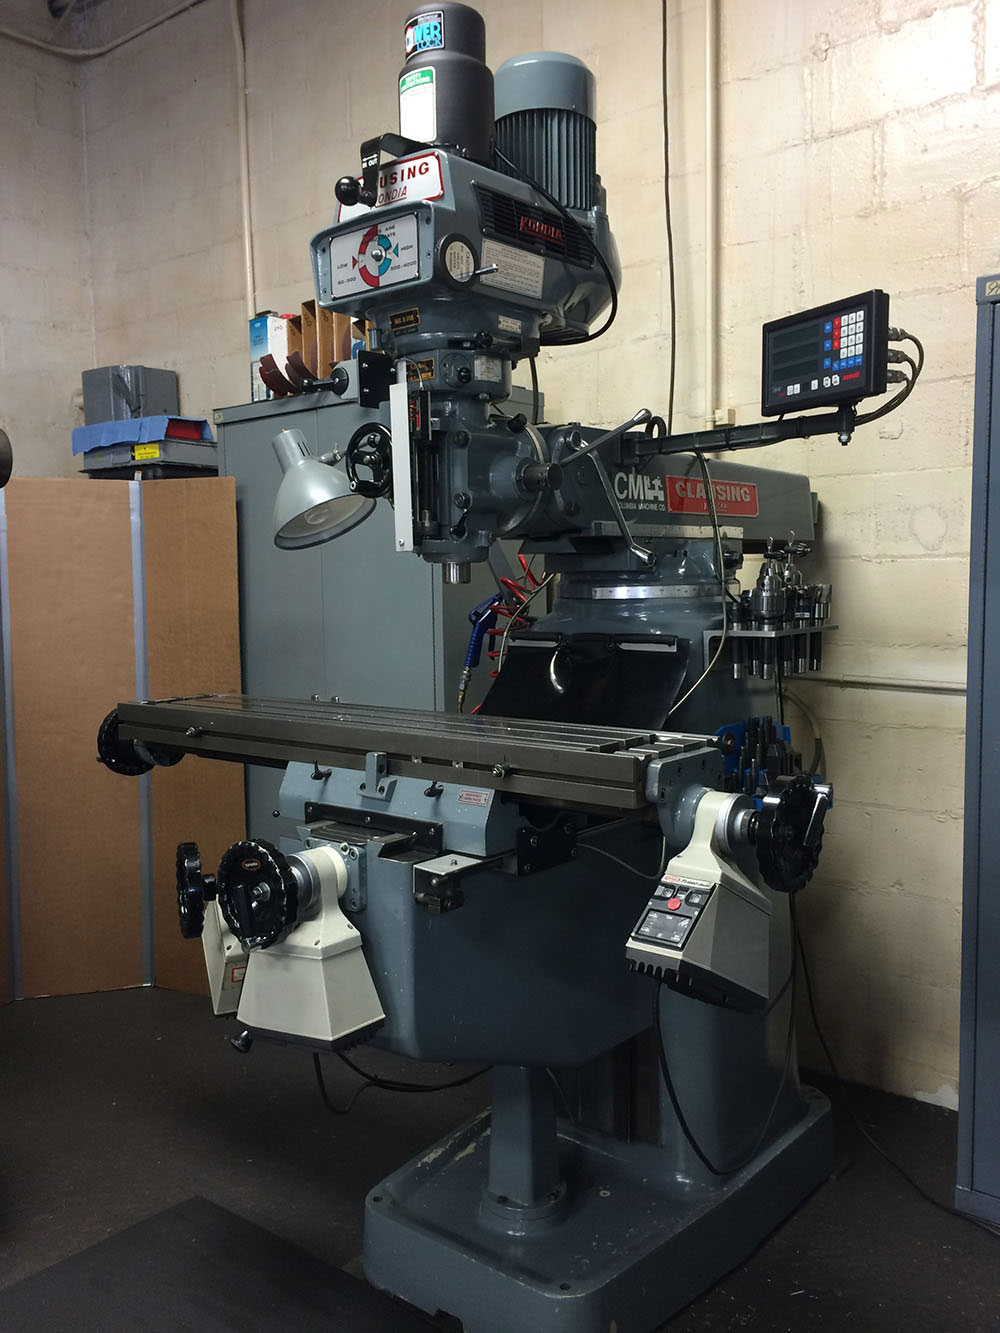 Clausing Kondia Vertical Milling Machine Equipped with Newall Digitial Readout, Kurt Power draw bar, and Servo Power Axis Motors